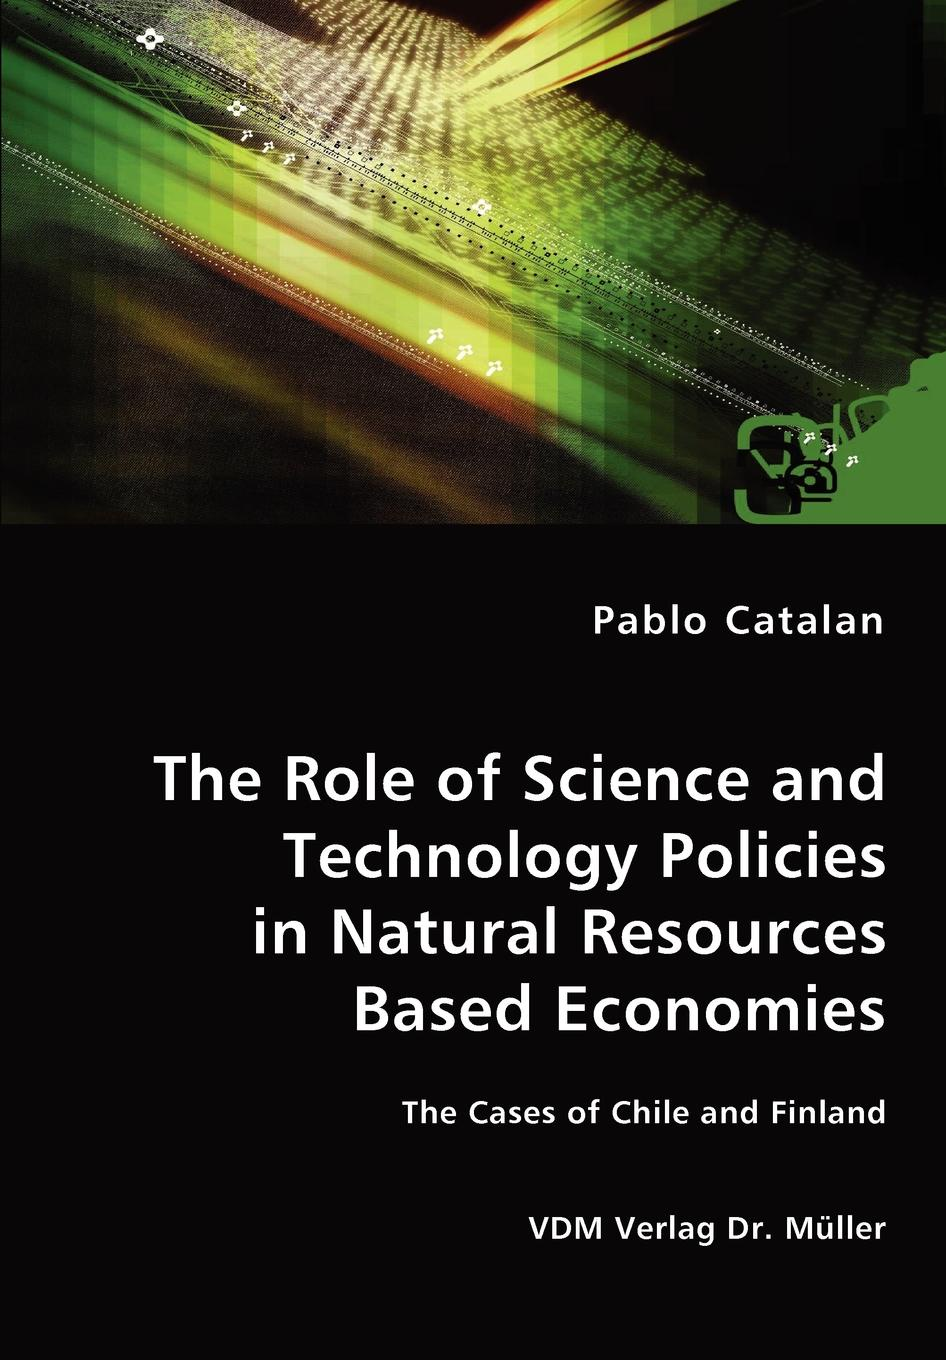 Pablo Catalan The Role of Science and Technology Policies in Natural Resources Based Economies